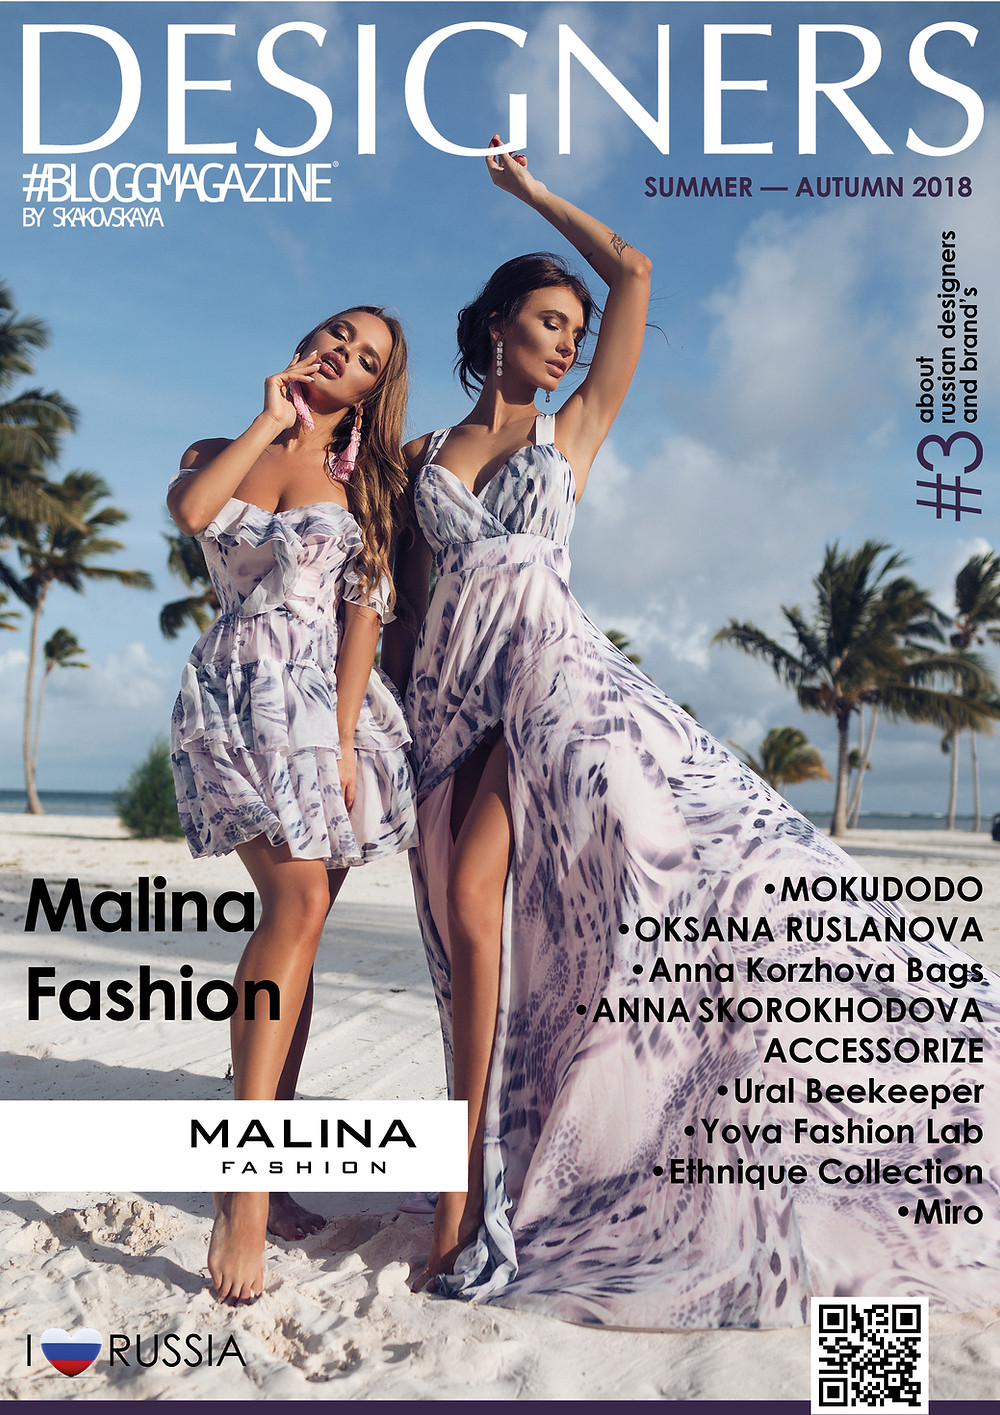 DESIGNERS BLOGGMAGAZINE #3, MALINA FASHION